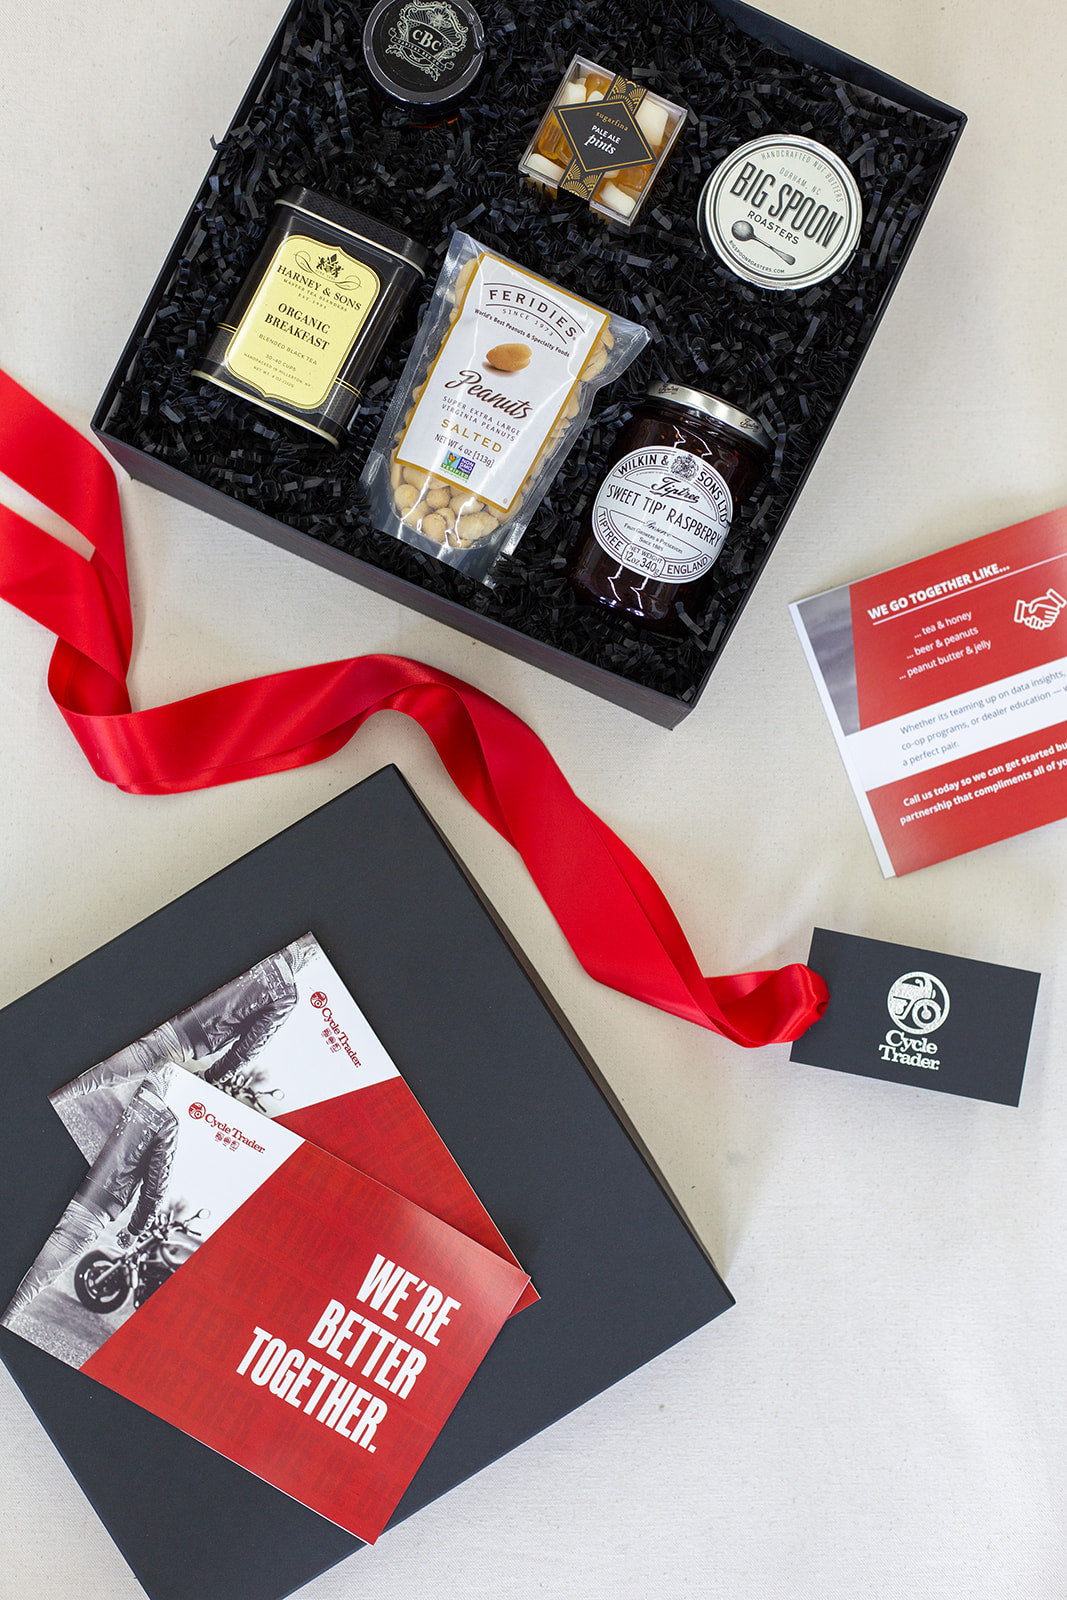 Luxury client gift boxes